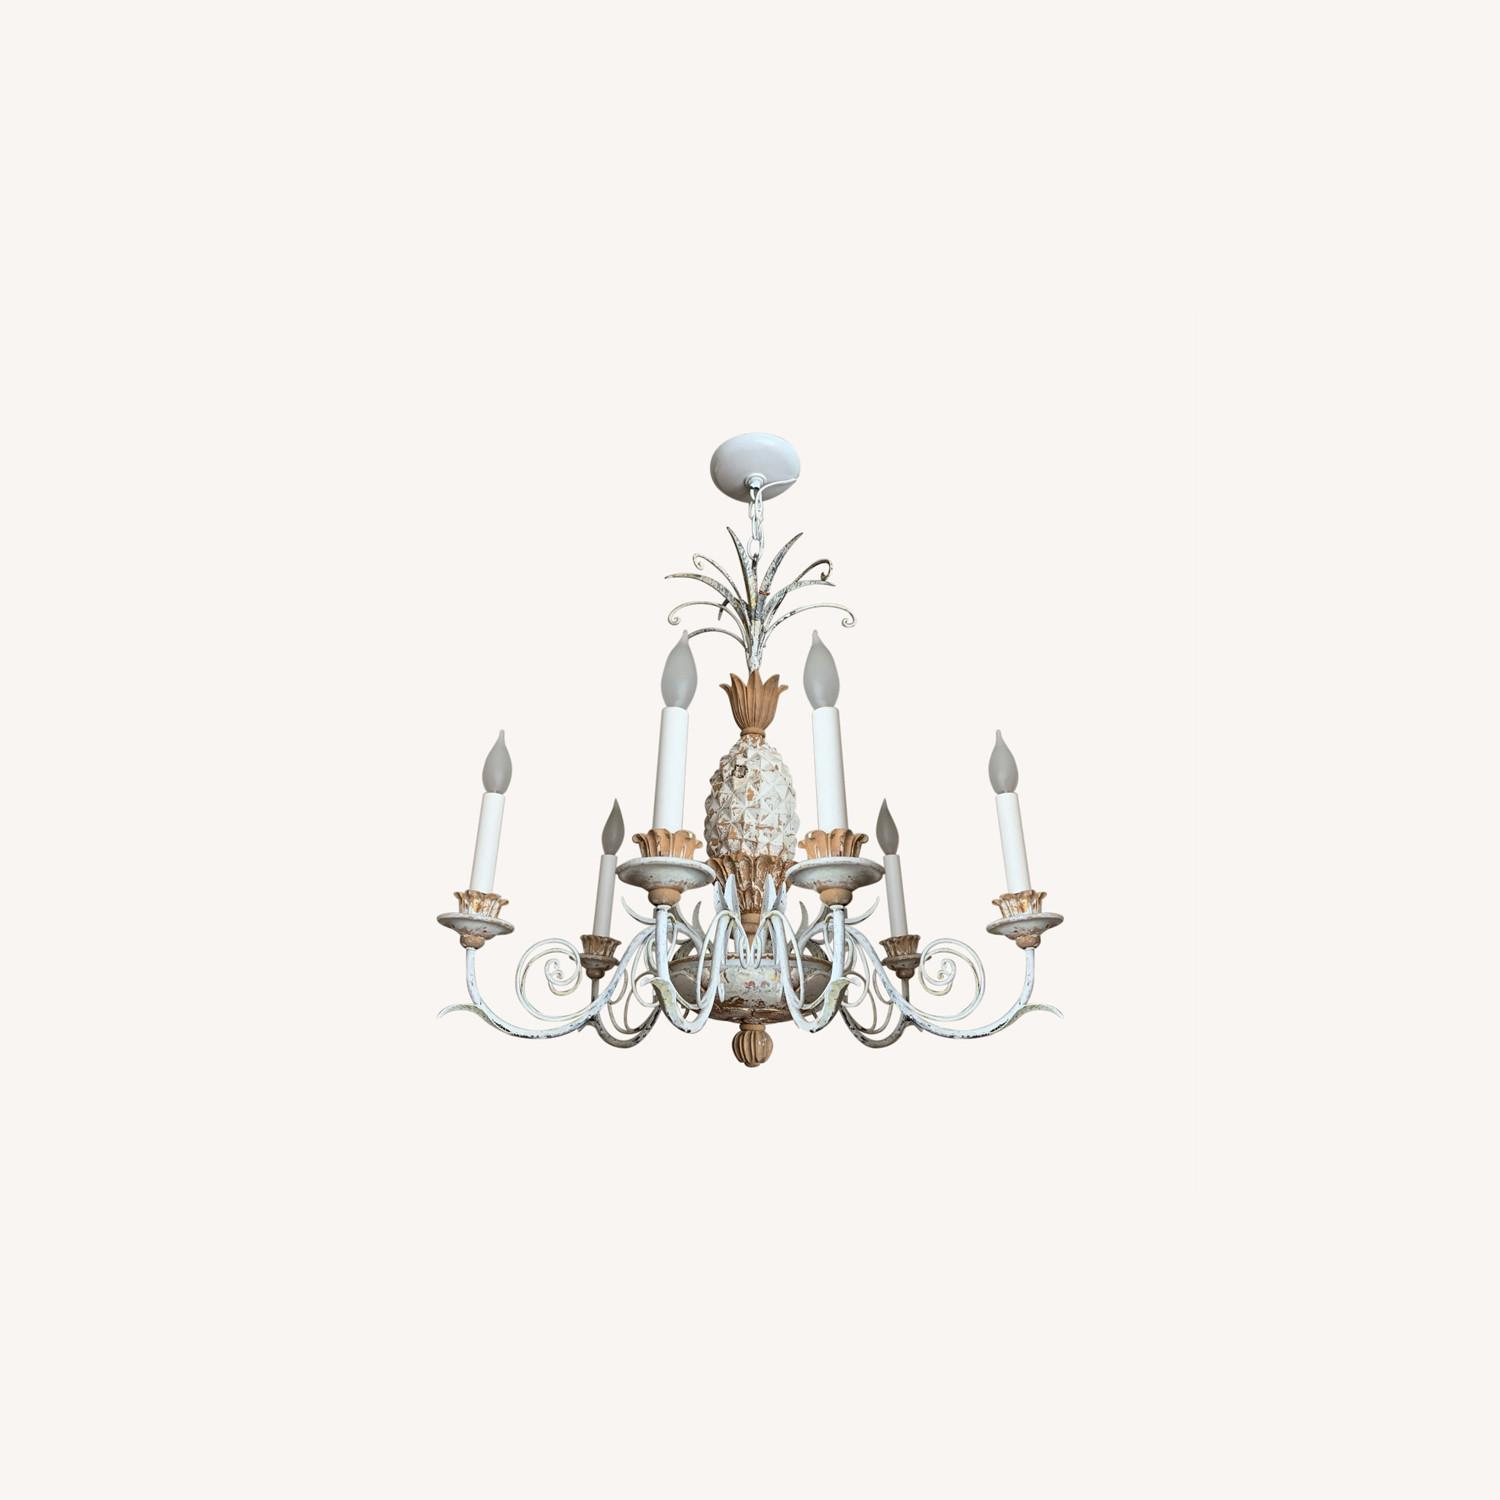 1920s White-Painted Wood and Metal Chandelier - image-0